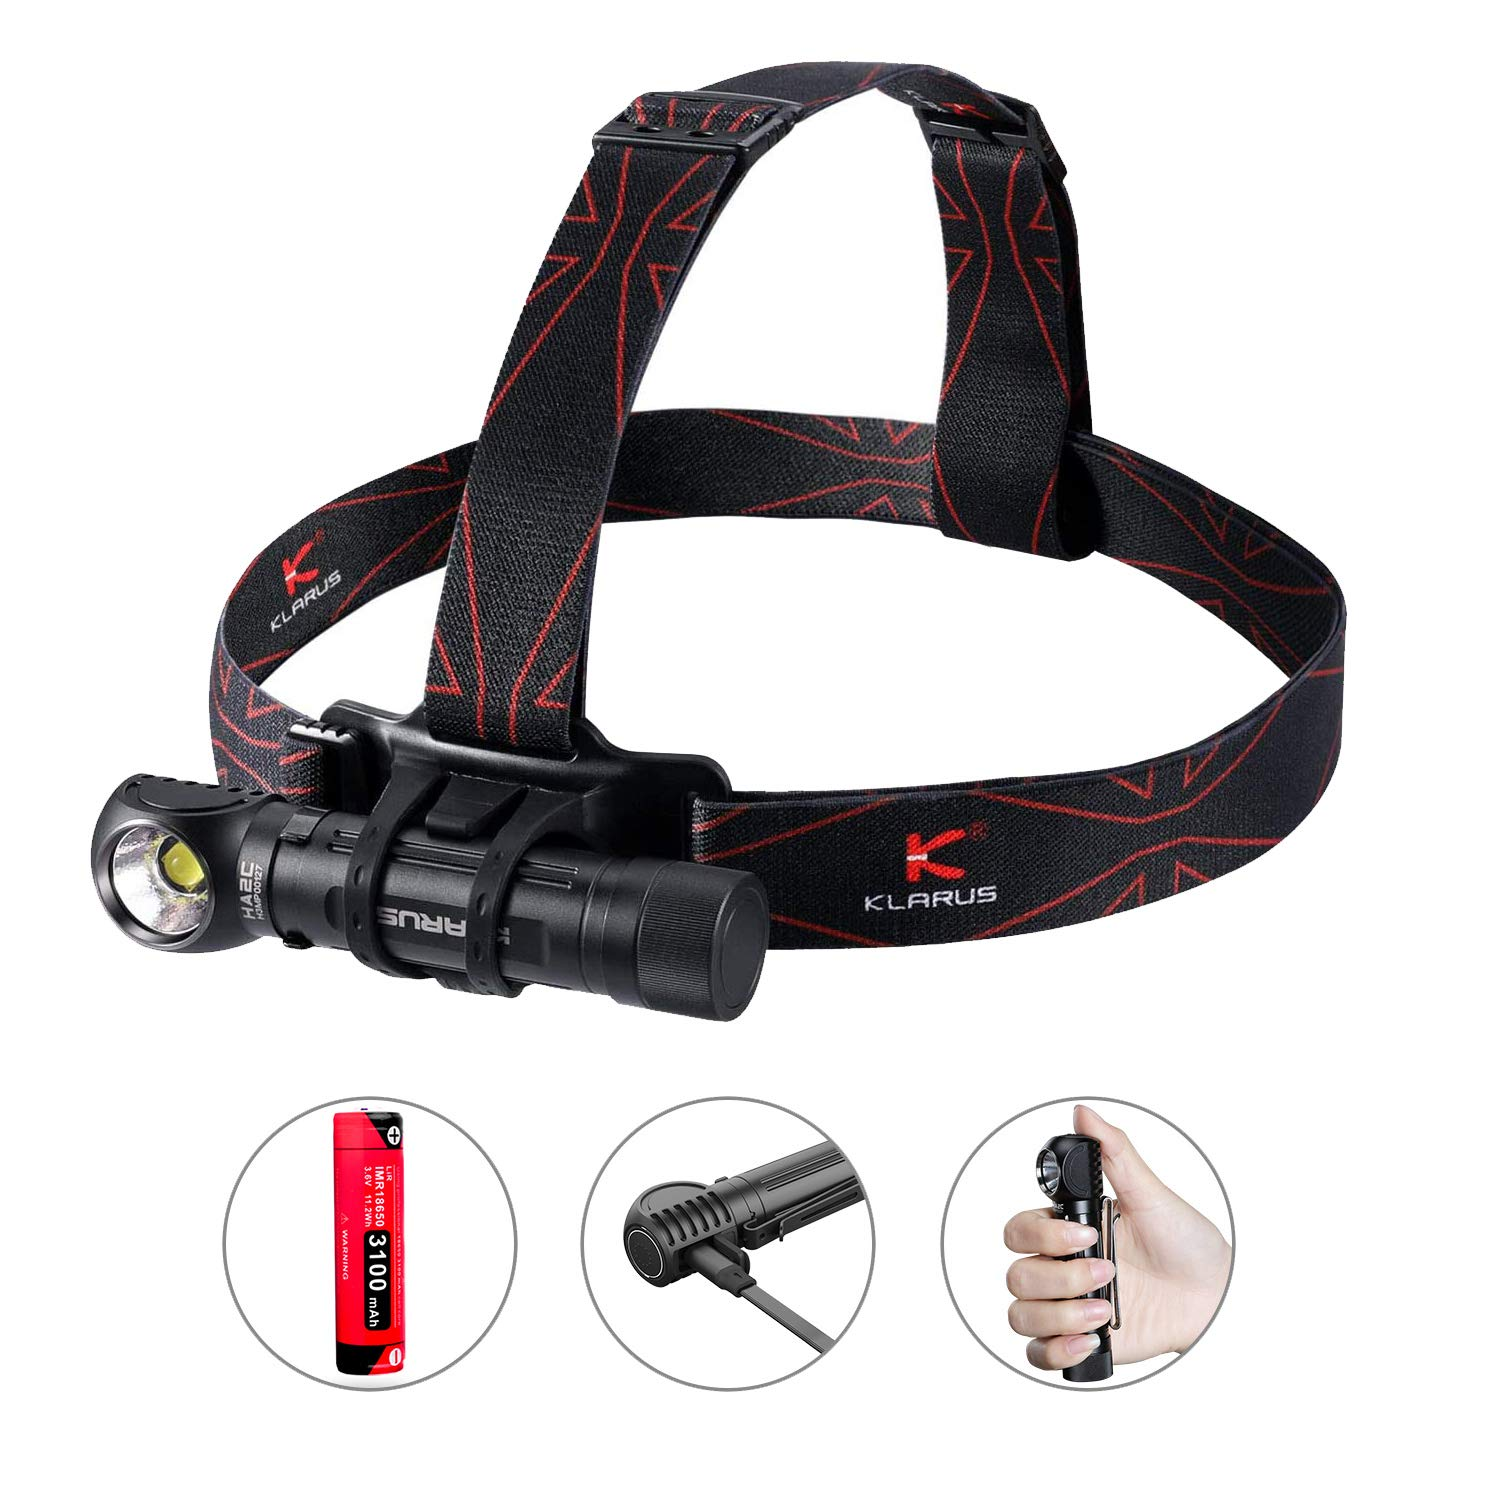 Klarus HA2C 3200 Lumens CREE LED Headlamp Flashlight, USB Rechargeable Multifunctional L-Angle Tool Light with Magnetic Tail Cap for Outdoor Camping Hiking Running Working